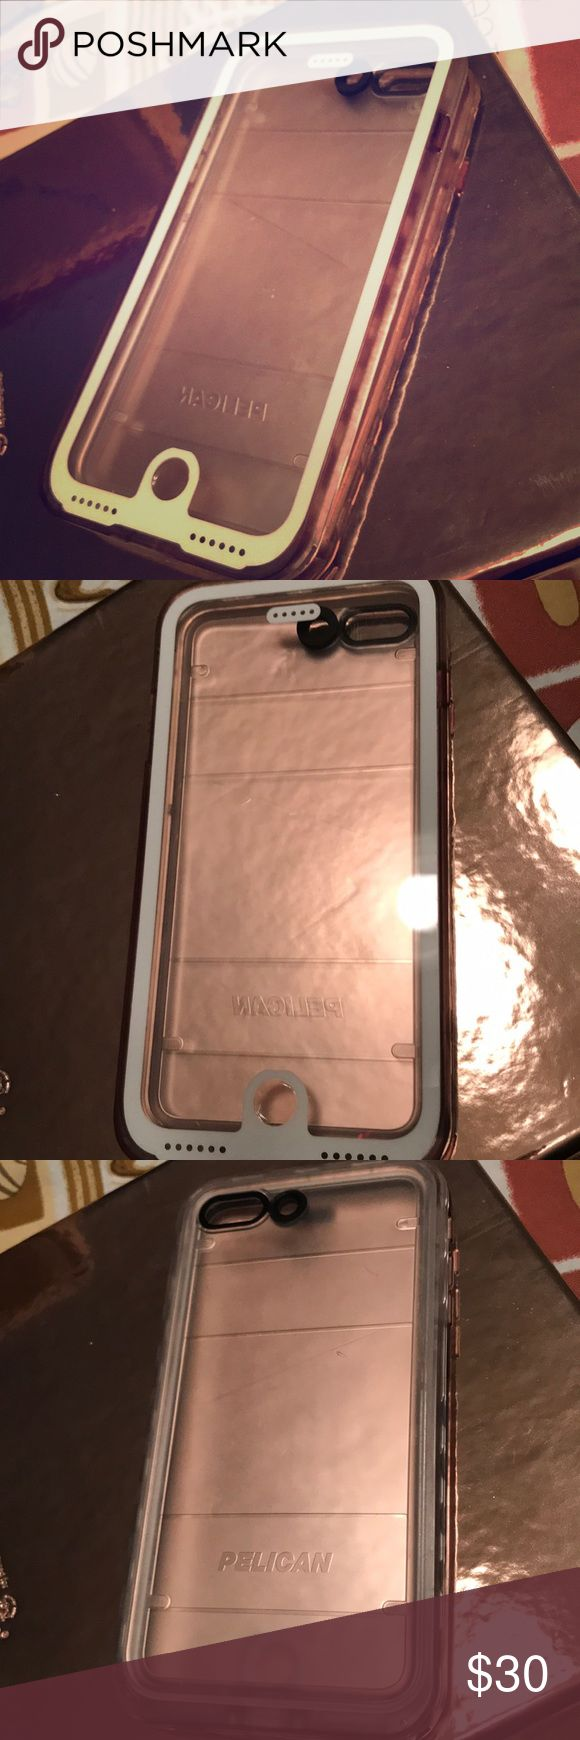 Waterproof iPhone case Used pelican waterproof iPhone 7 Plus case clear with white edges in front. Has a couple scratches on the back and some over where the camera is but never effected my pictures. Make me an offer 😁 Other